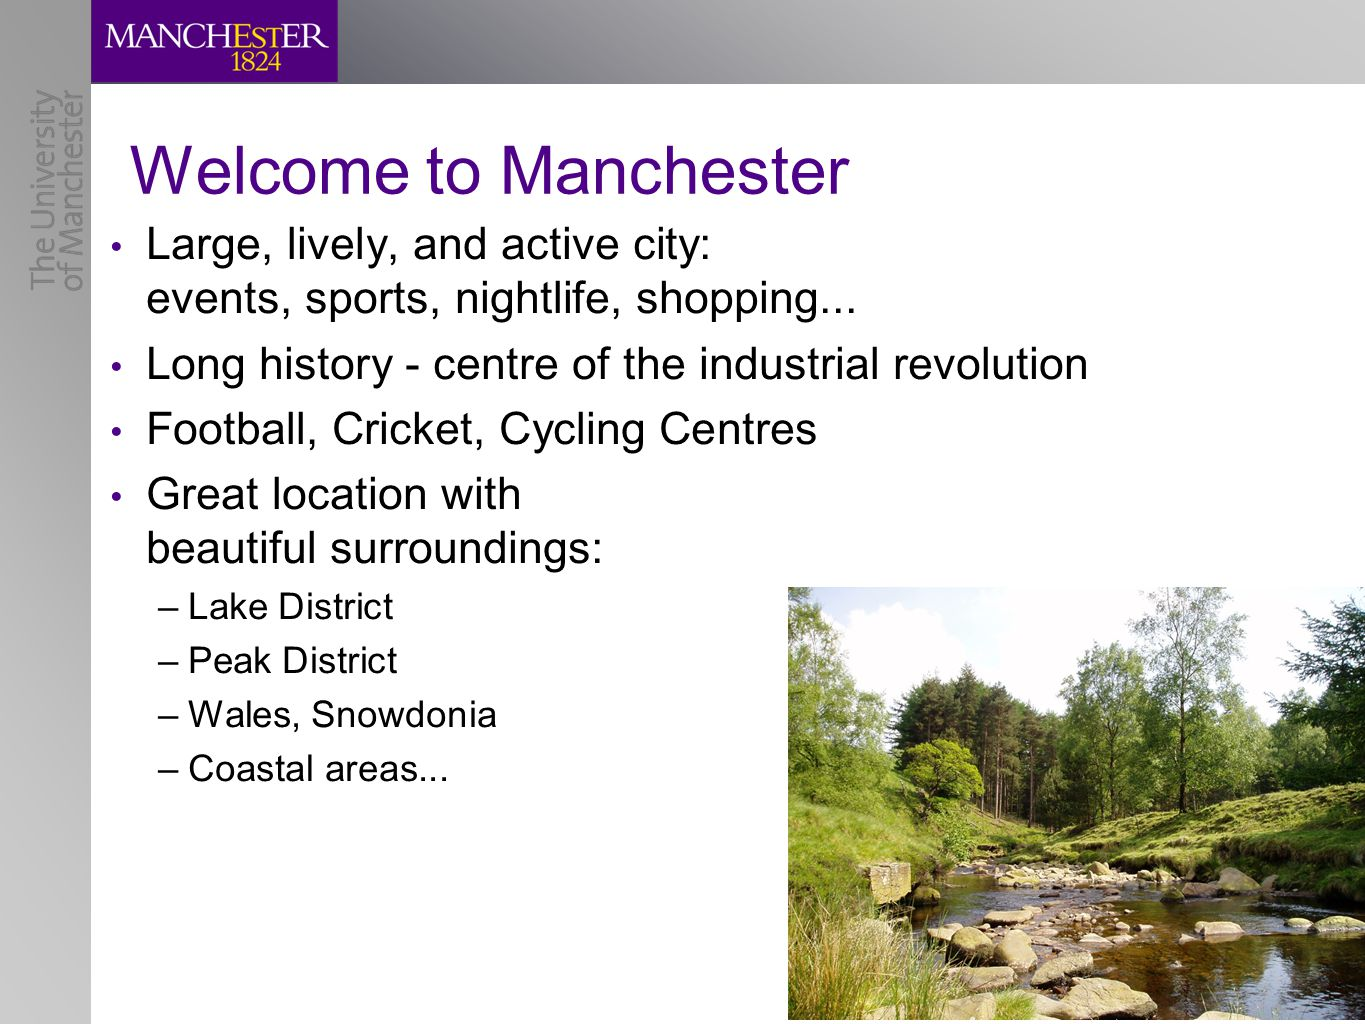 Welcome to Manchester Large, lively, and active city: events, sports, nightlife, shopping...